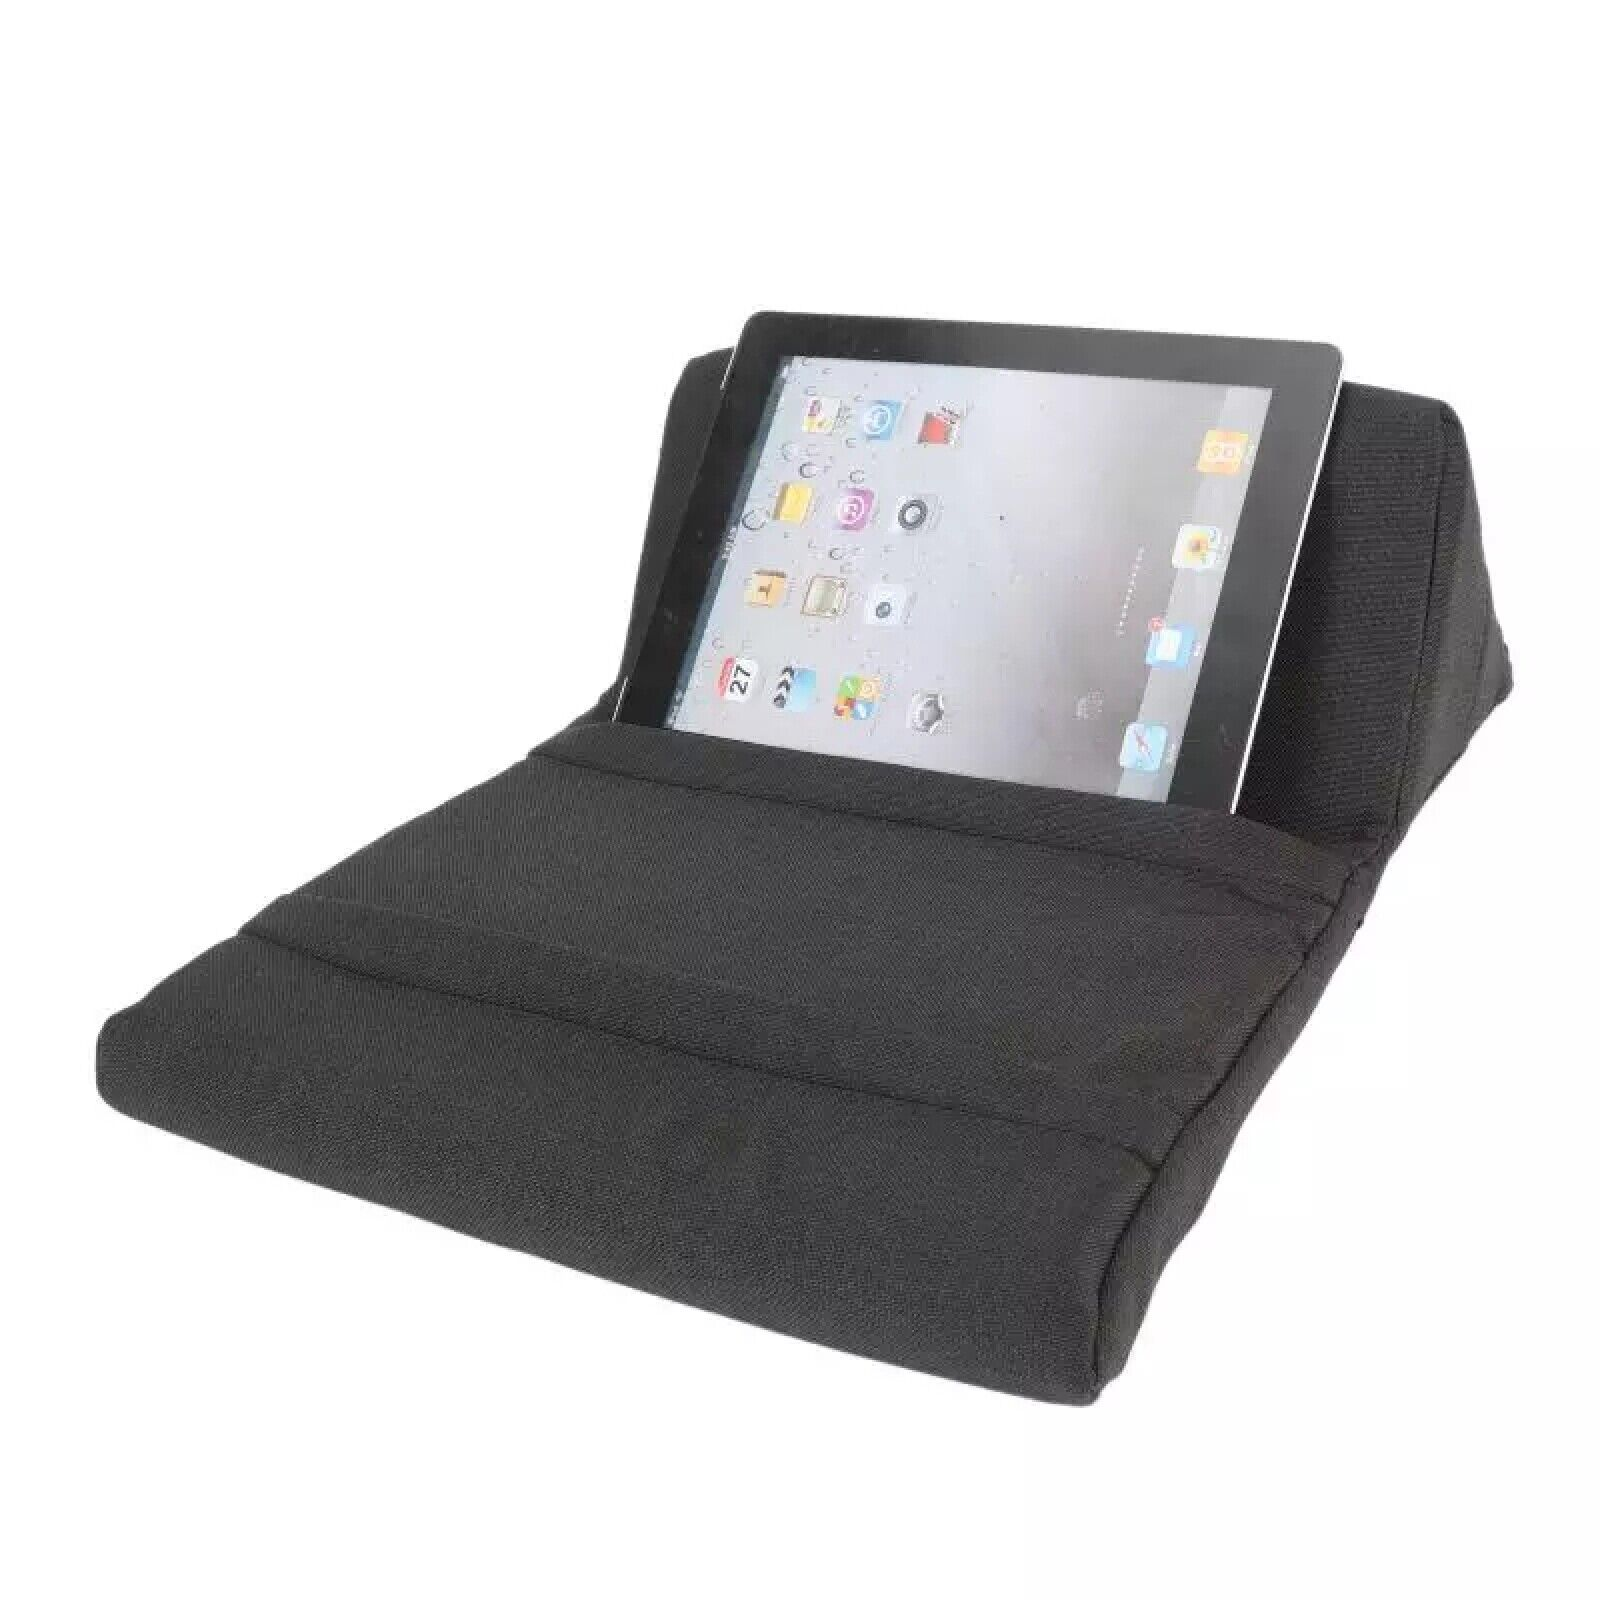 Laptop Holder Tablet Stand Pillow Foam Cooling Pad Rest Cush